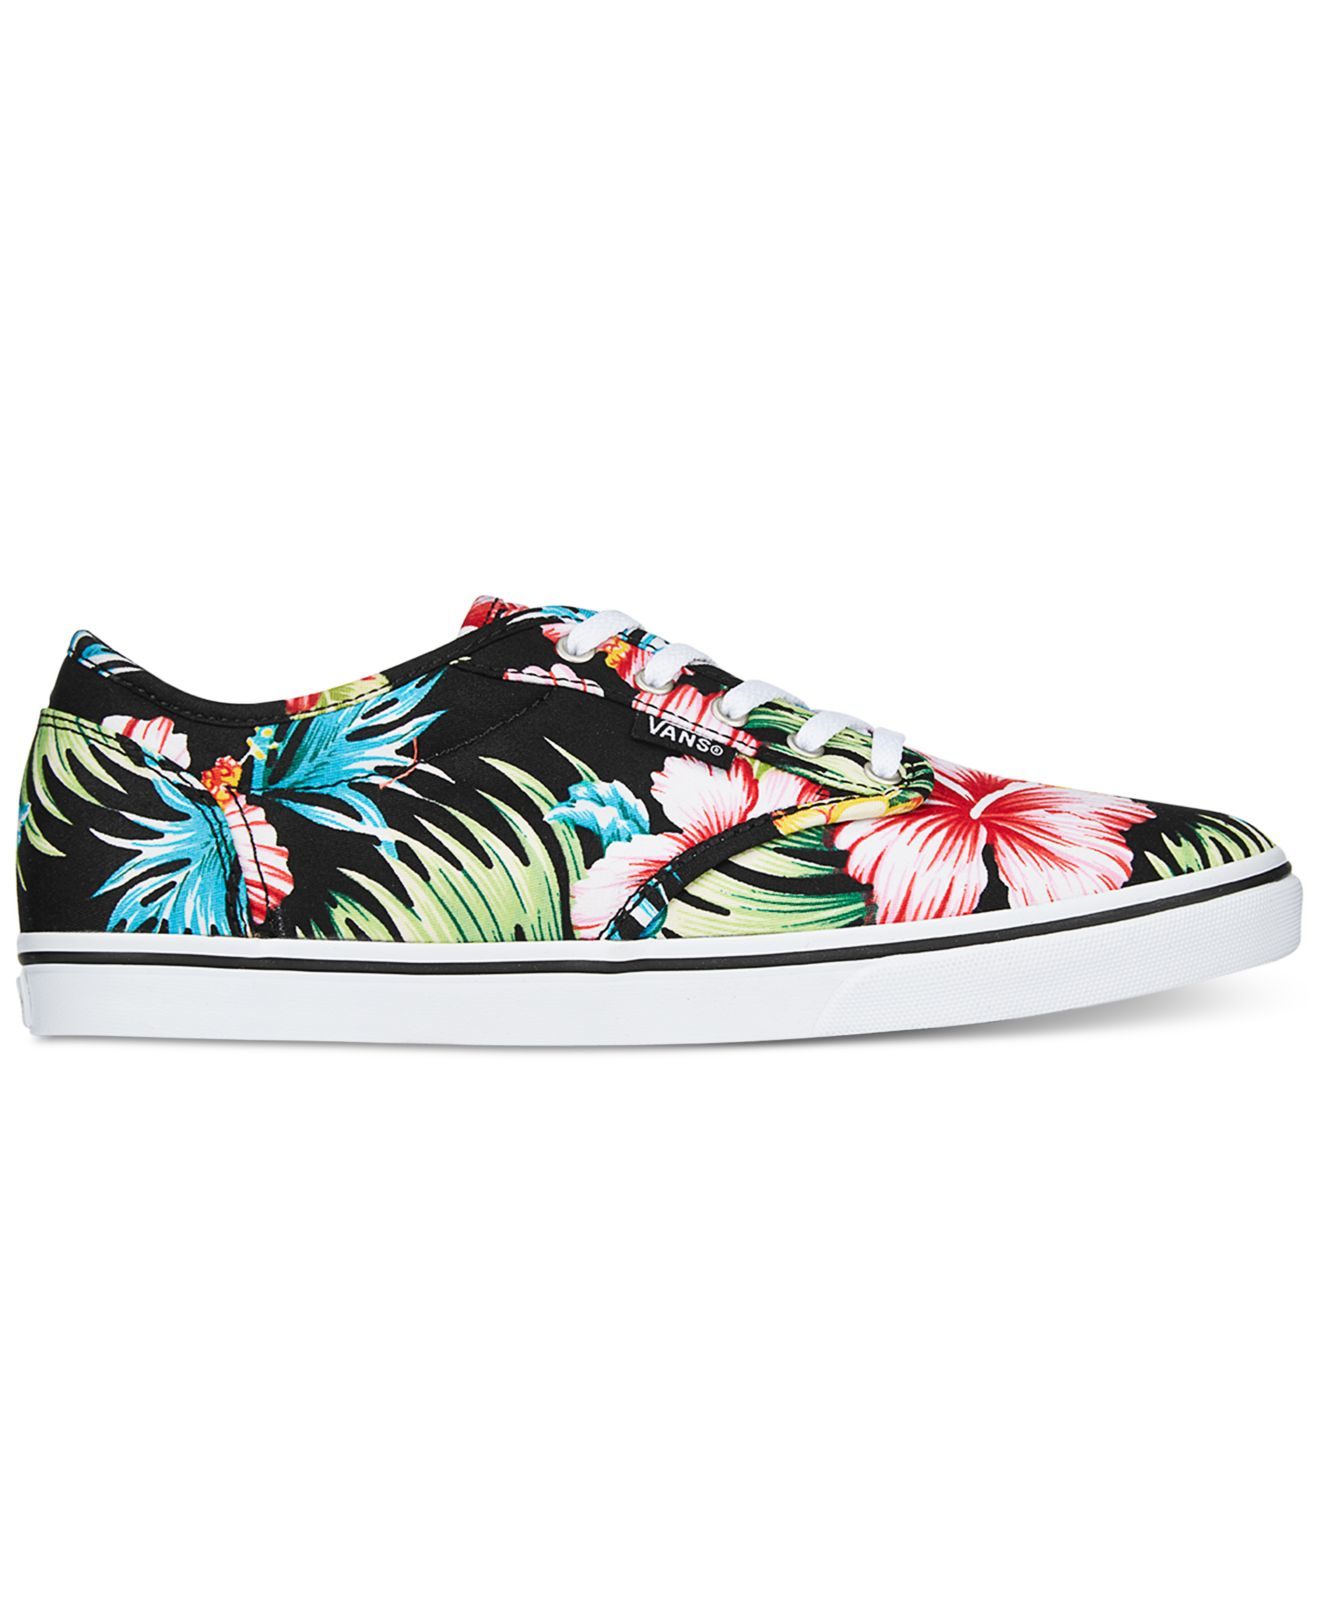 26551b49c9d6 Lyst - Vans Women s Atwood Low Aloha Lace-up Sneakers in Black